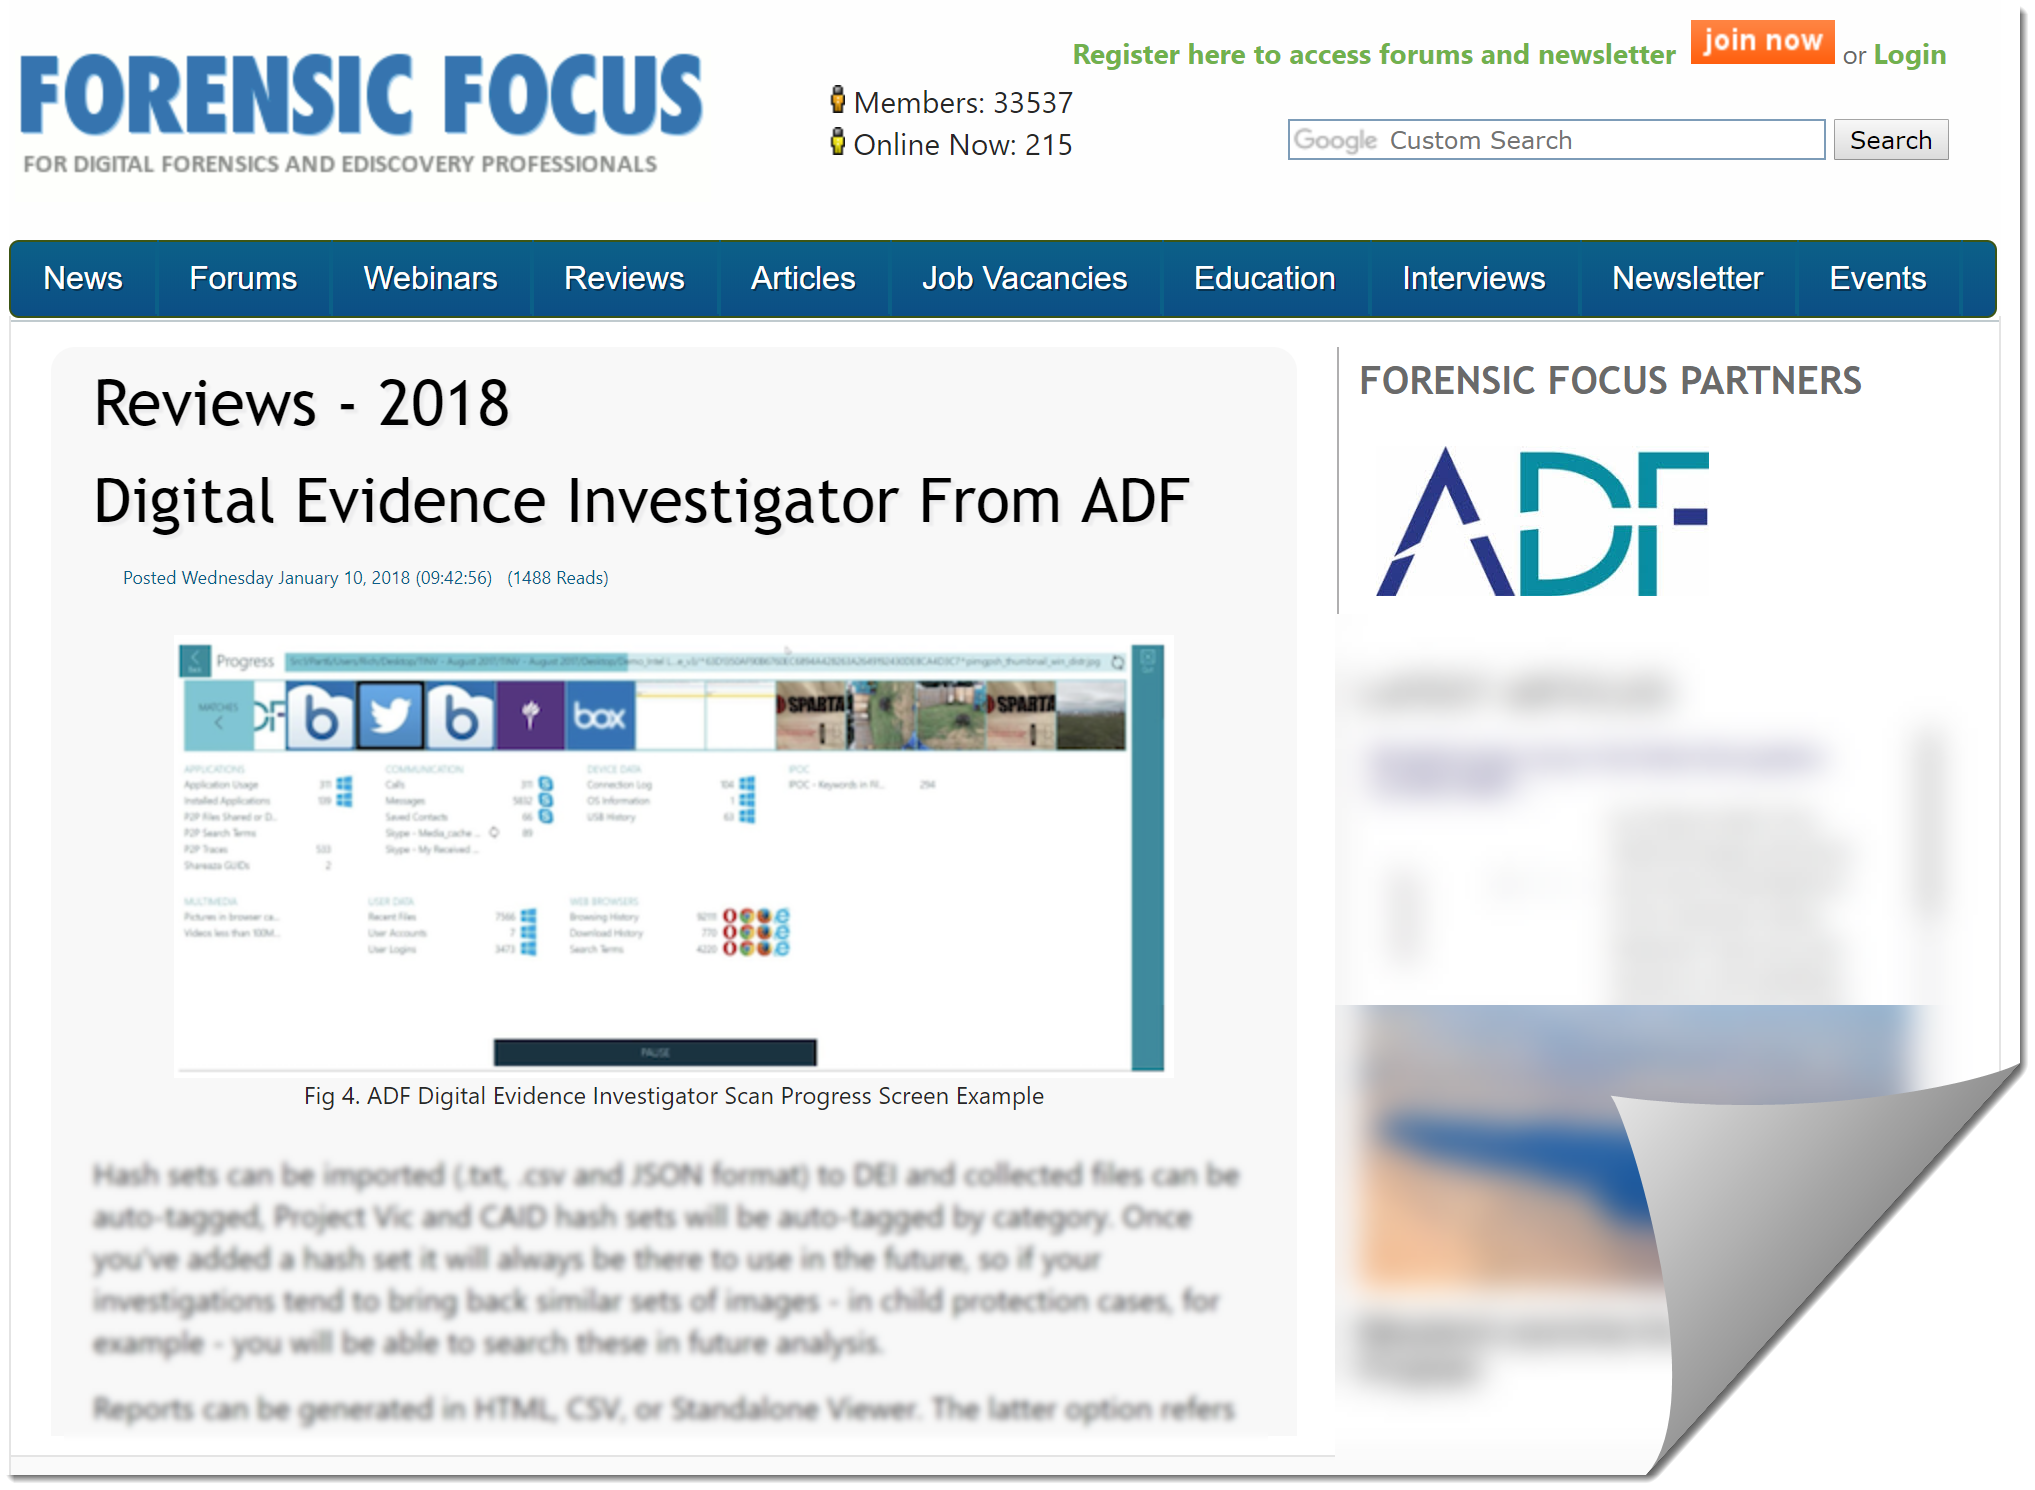 Forensic Focus Reviews Digital Evidence Investigator